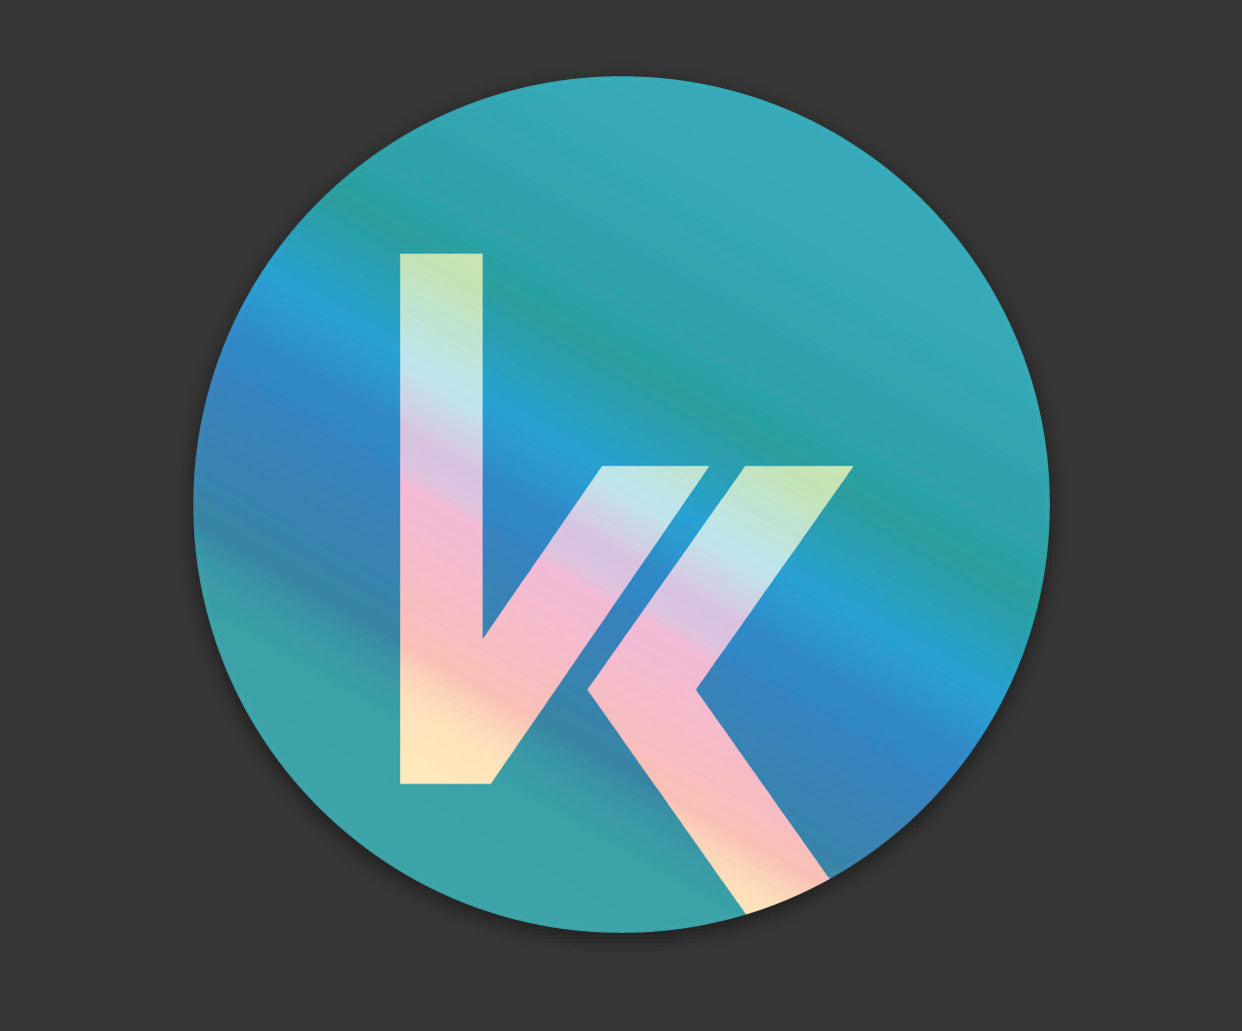 Holographic VK Round Decal